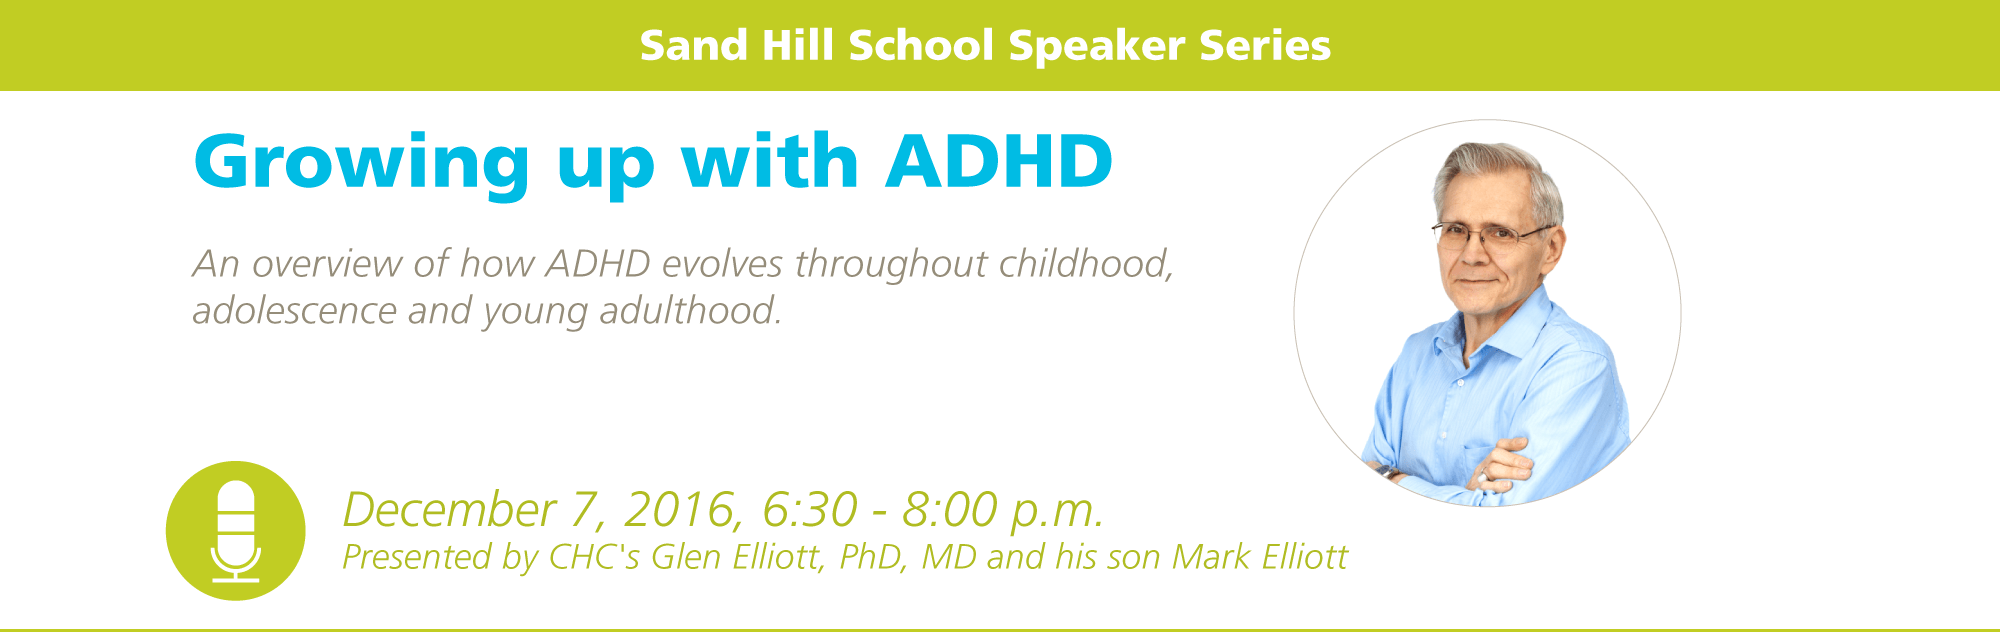 Sand Hill School Speaker Series: Growing up with ADHD, An overview of how ADHD evolves throughout childhood, adolescence and young adulthood. December 7, 2016, 6:30 – 8:00 p.m. Presented by CHC's Glen Elliott, PhD, MD and his son Mark Elliott